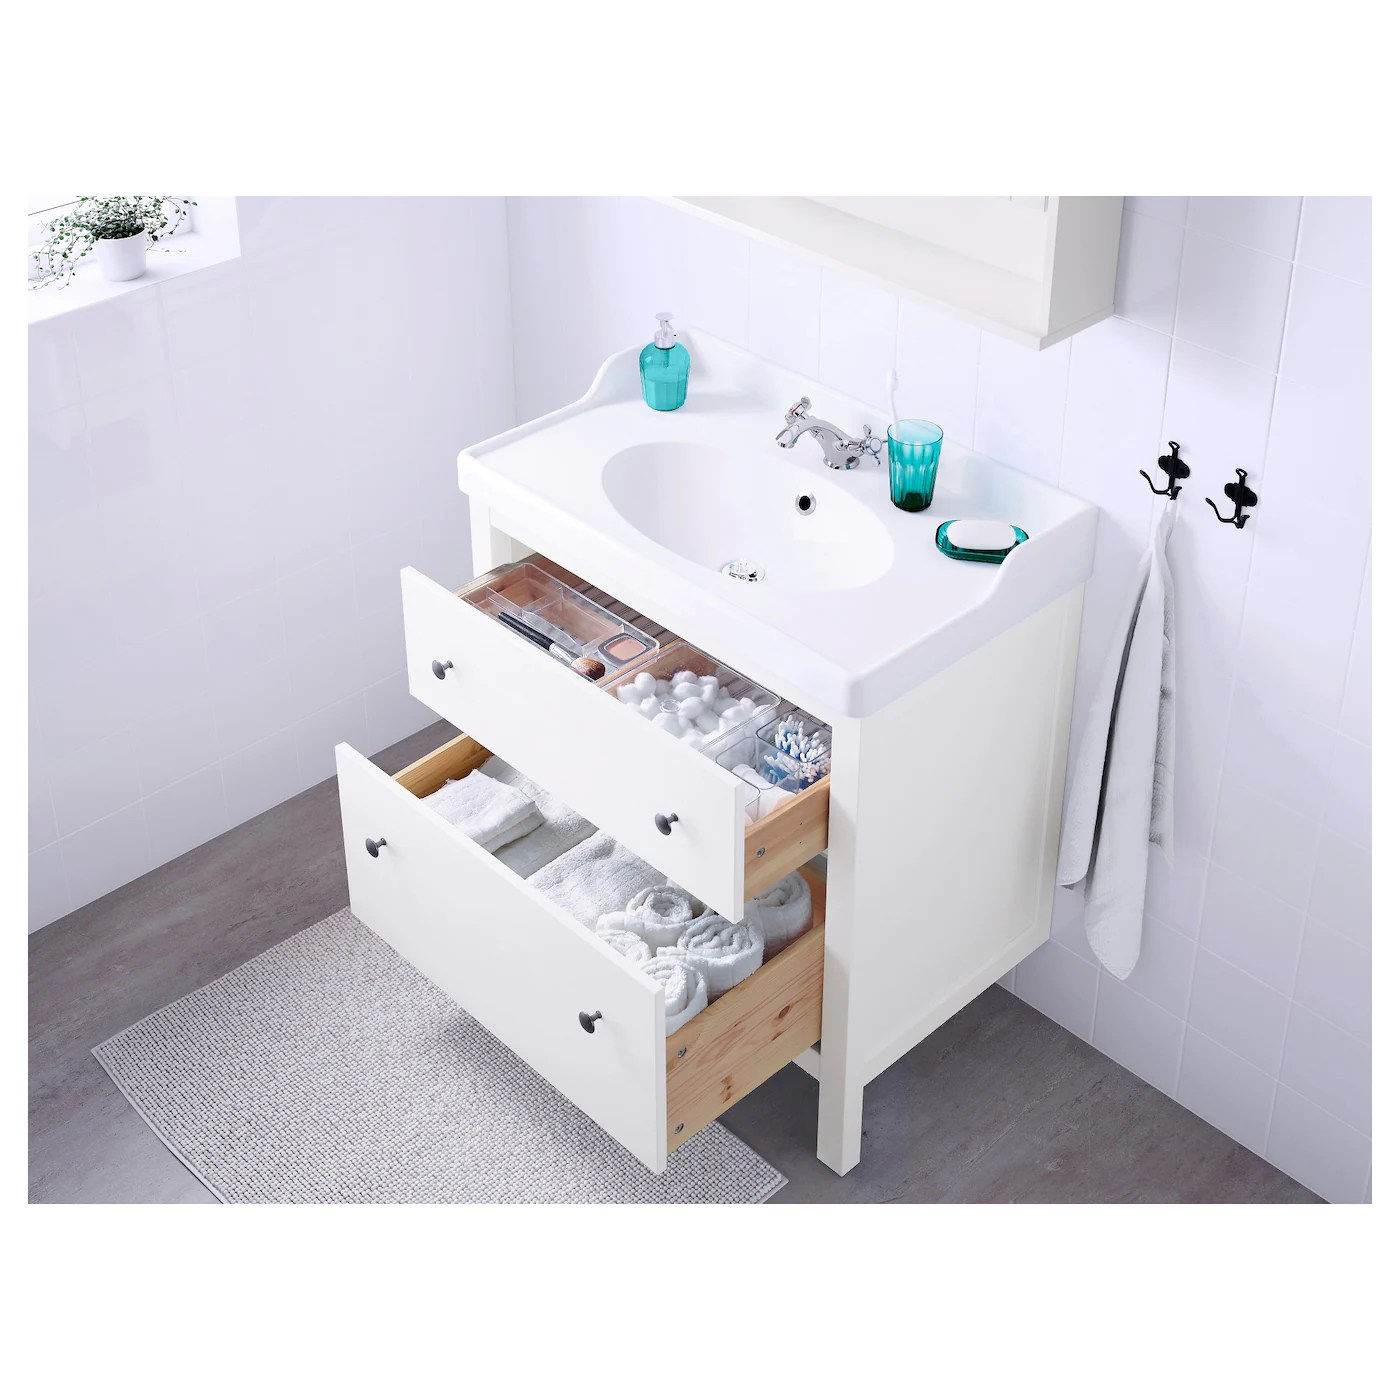 hemnes sink cabinet with 2 drawers white 31 1 2x18 1 2x32 5 8